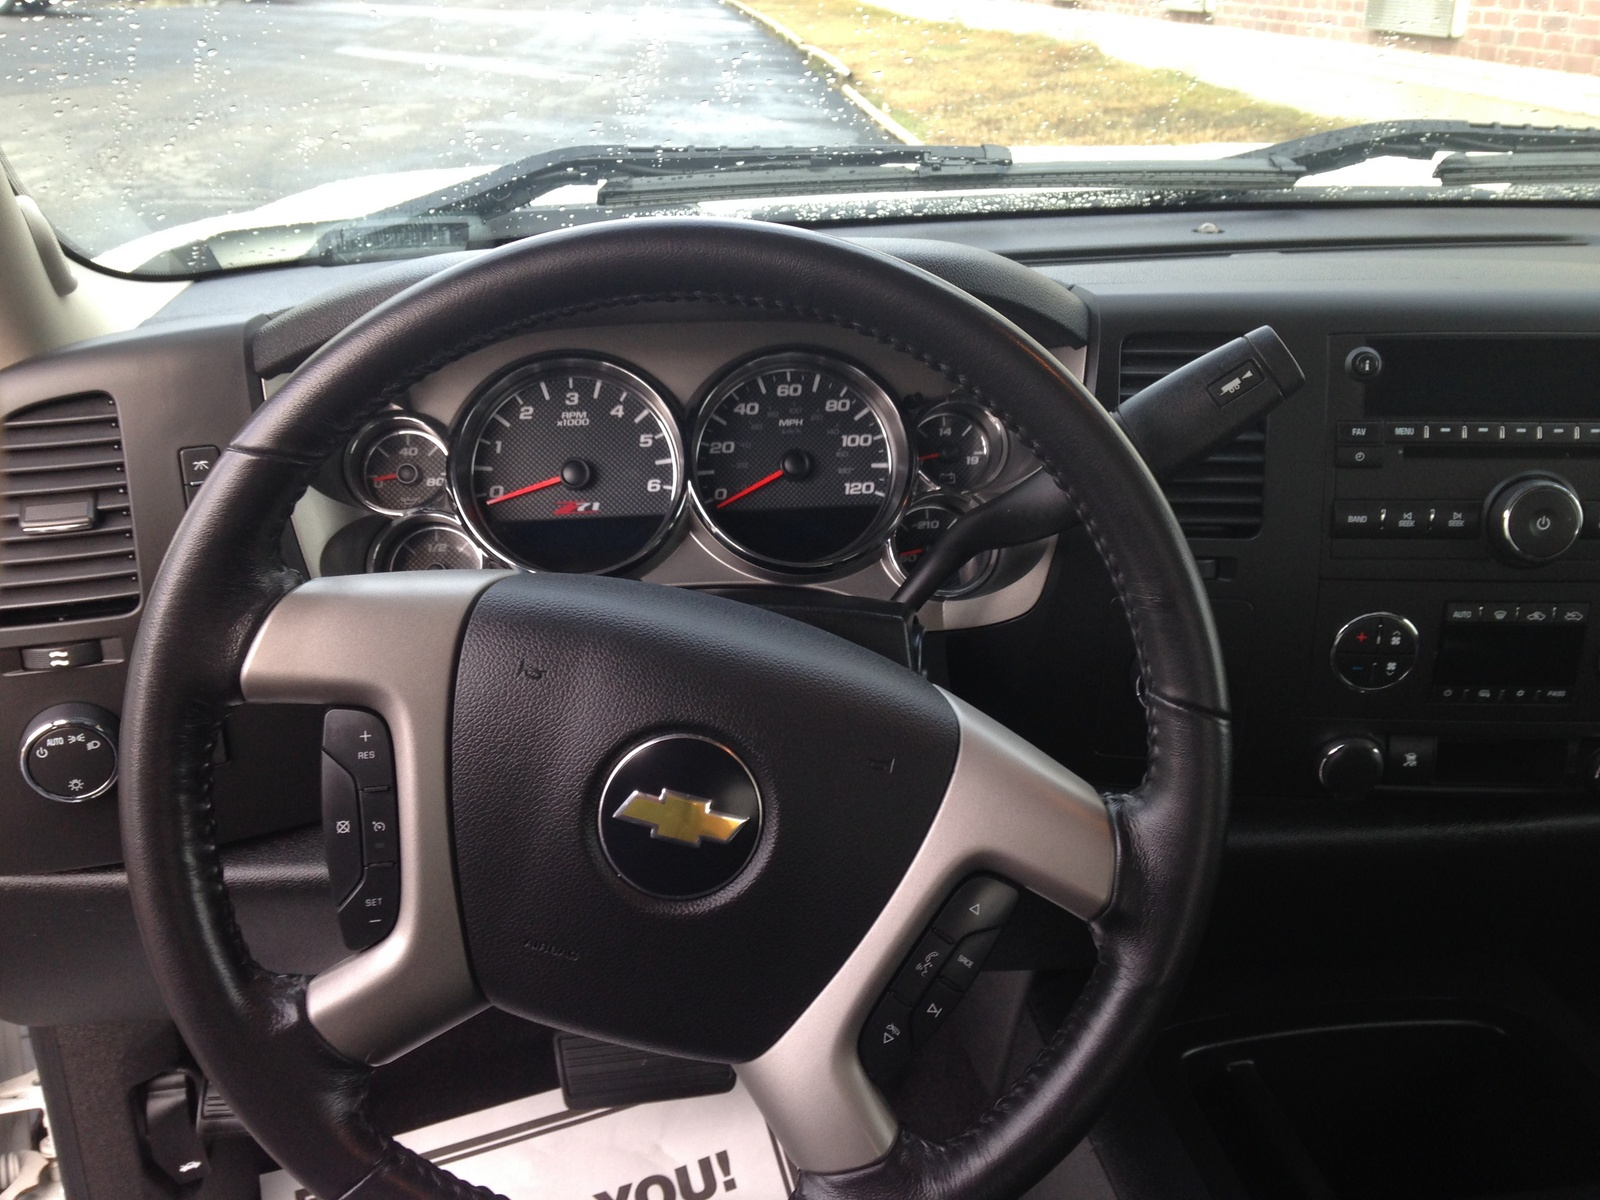 2010 Chevy Truck Interior Pictures To Pin On Pinterest Pinsdaddy